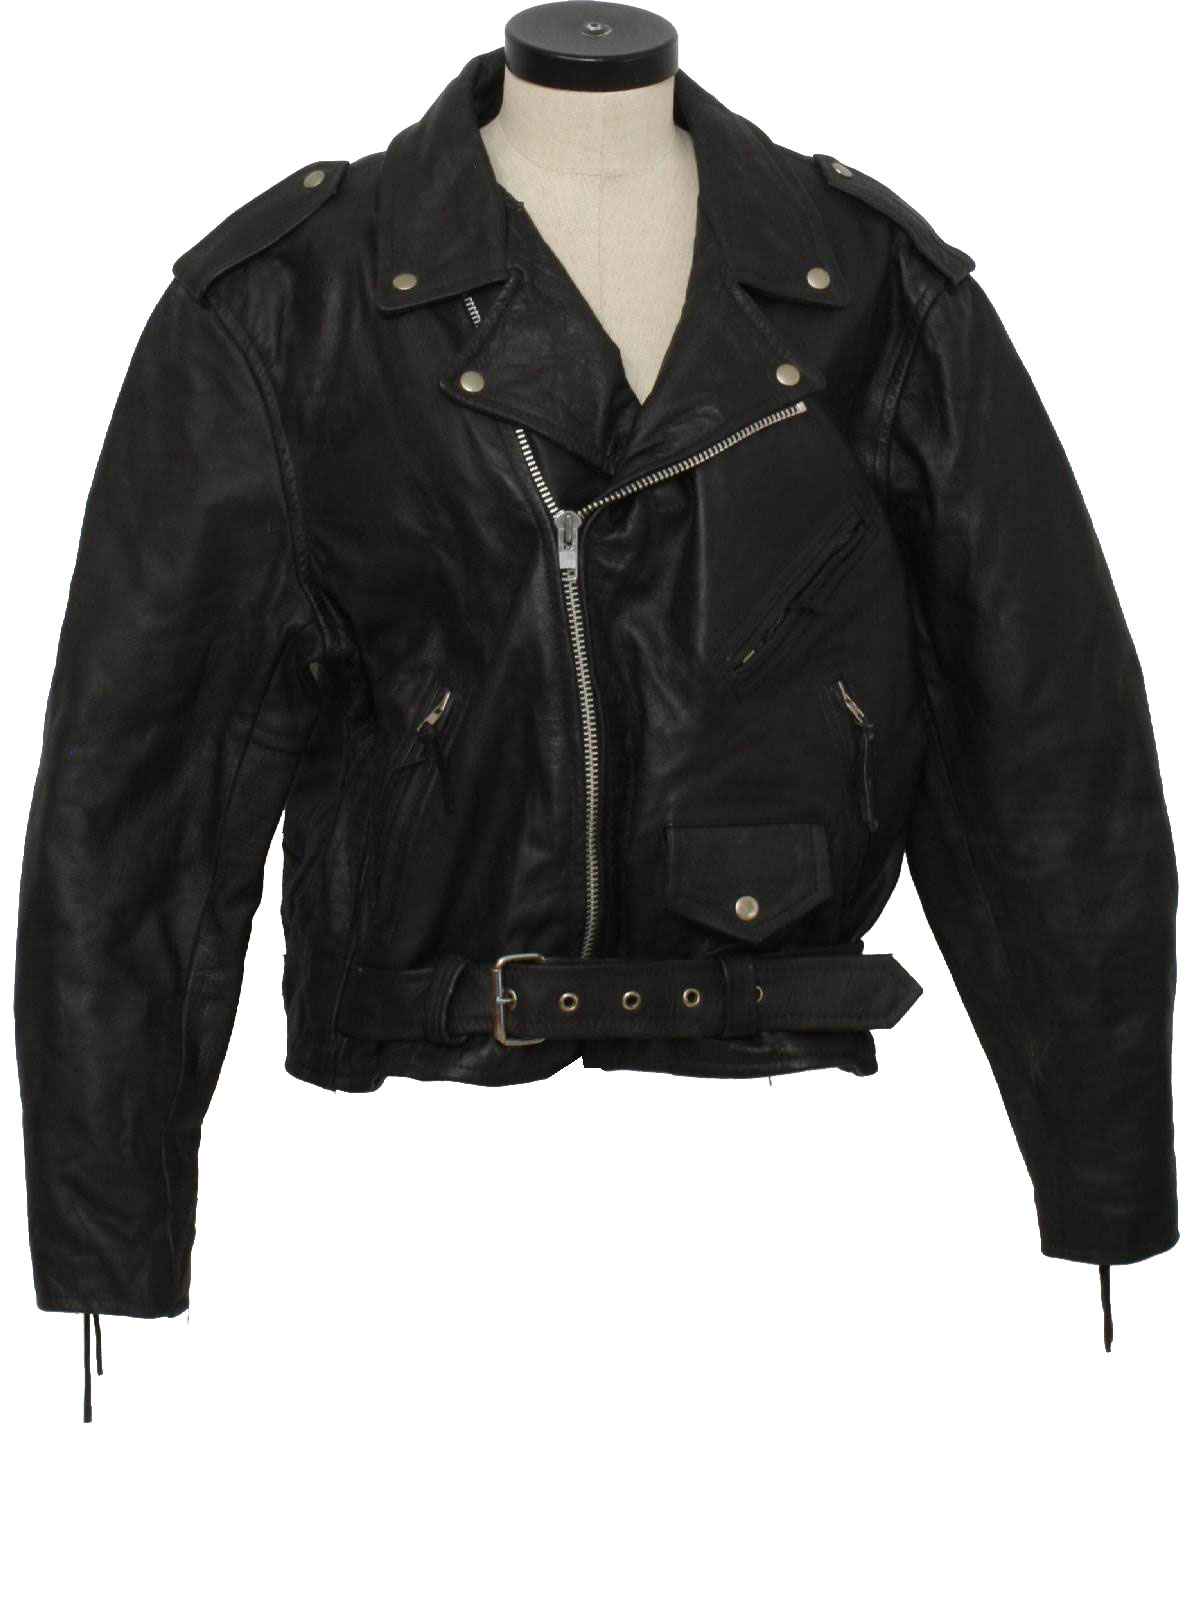 Uncle Jesse's Leather Jackets